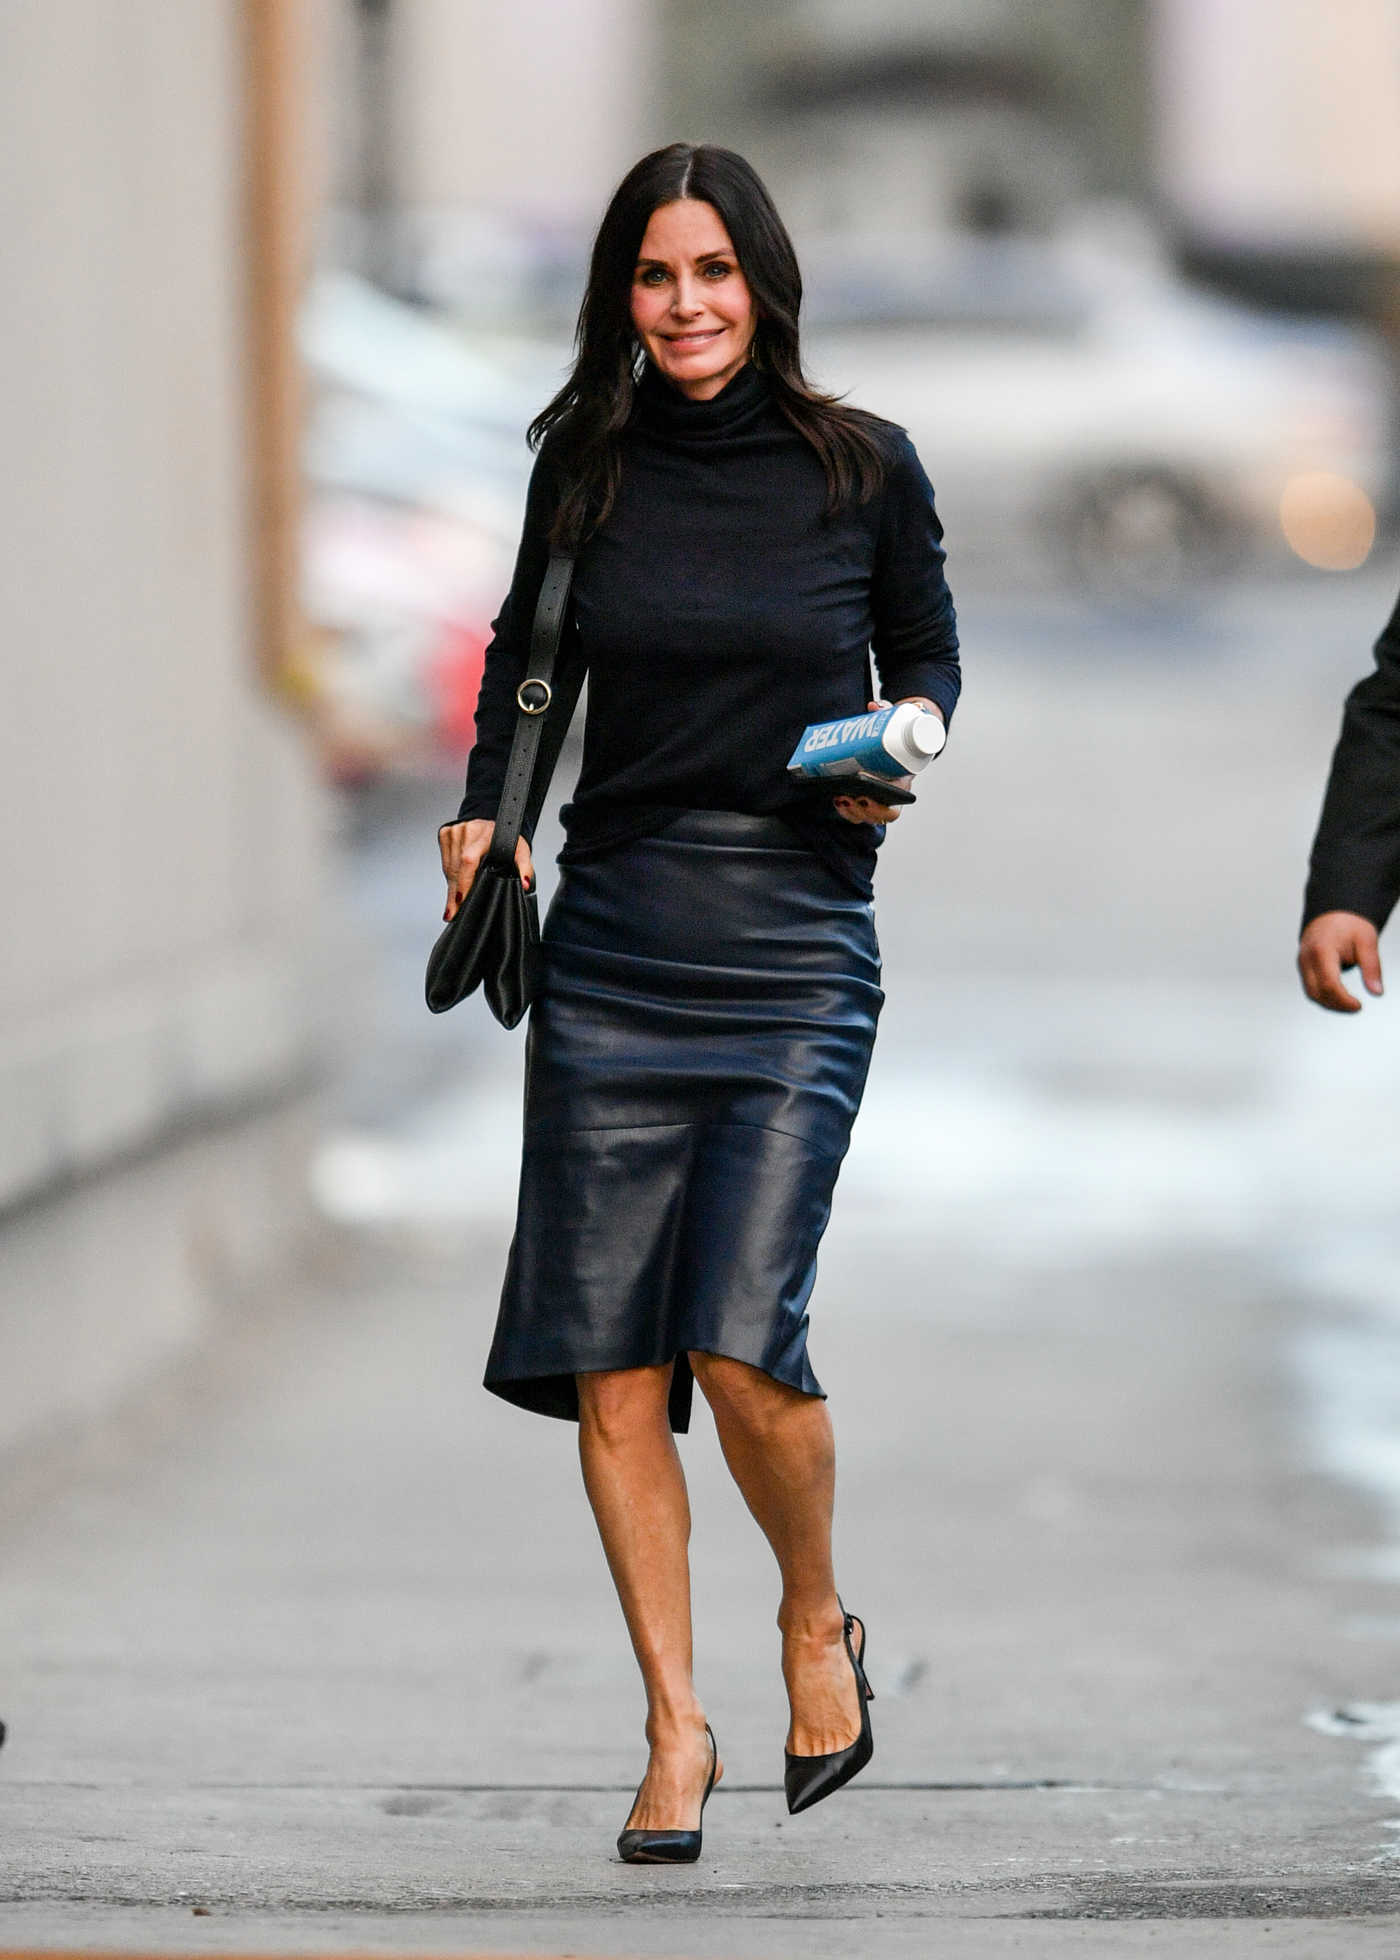 Courteney Cox in a Black Turtleneck Arrives at the Jimmy Kimmel Live! Studios in Los Angeles 01/07/2019